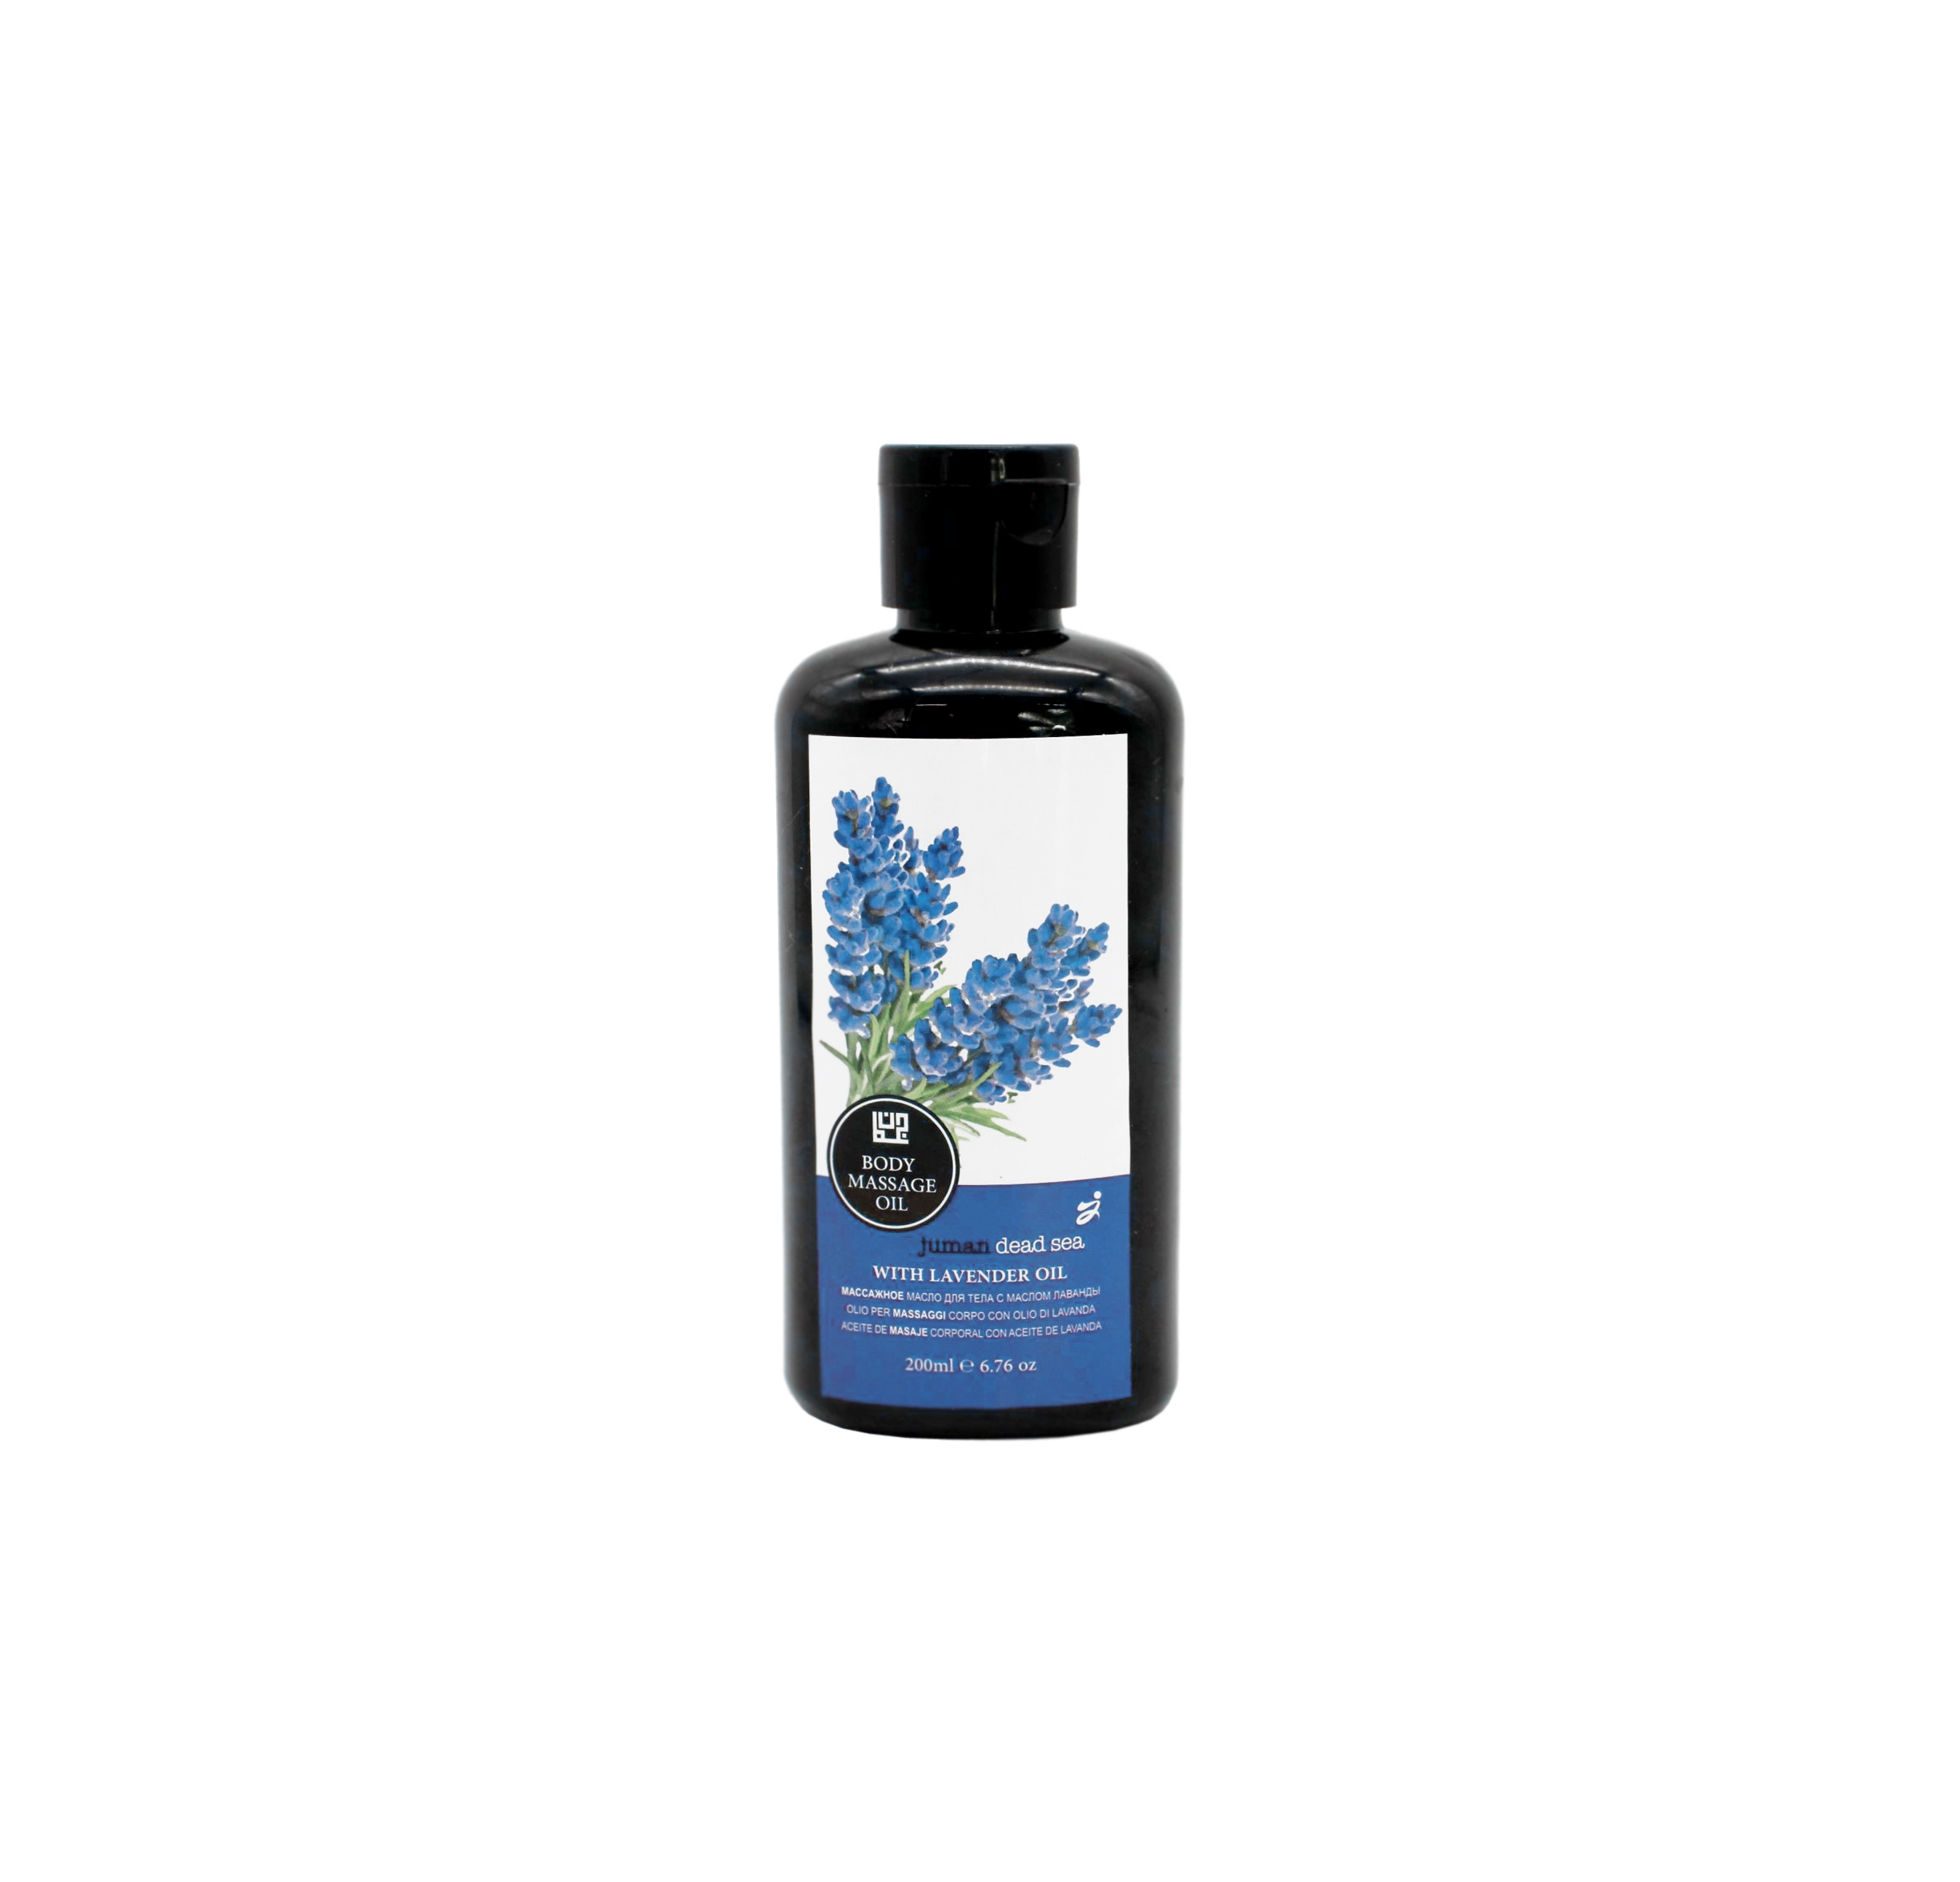 Buy Body Massage oil with Lavender Oil